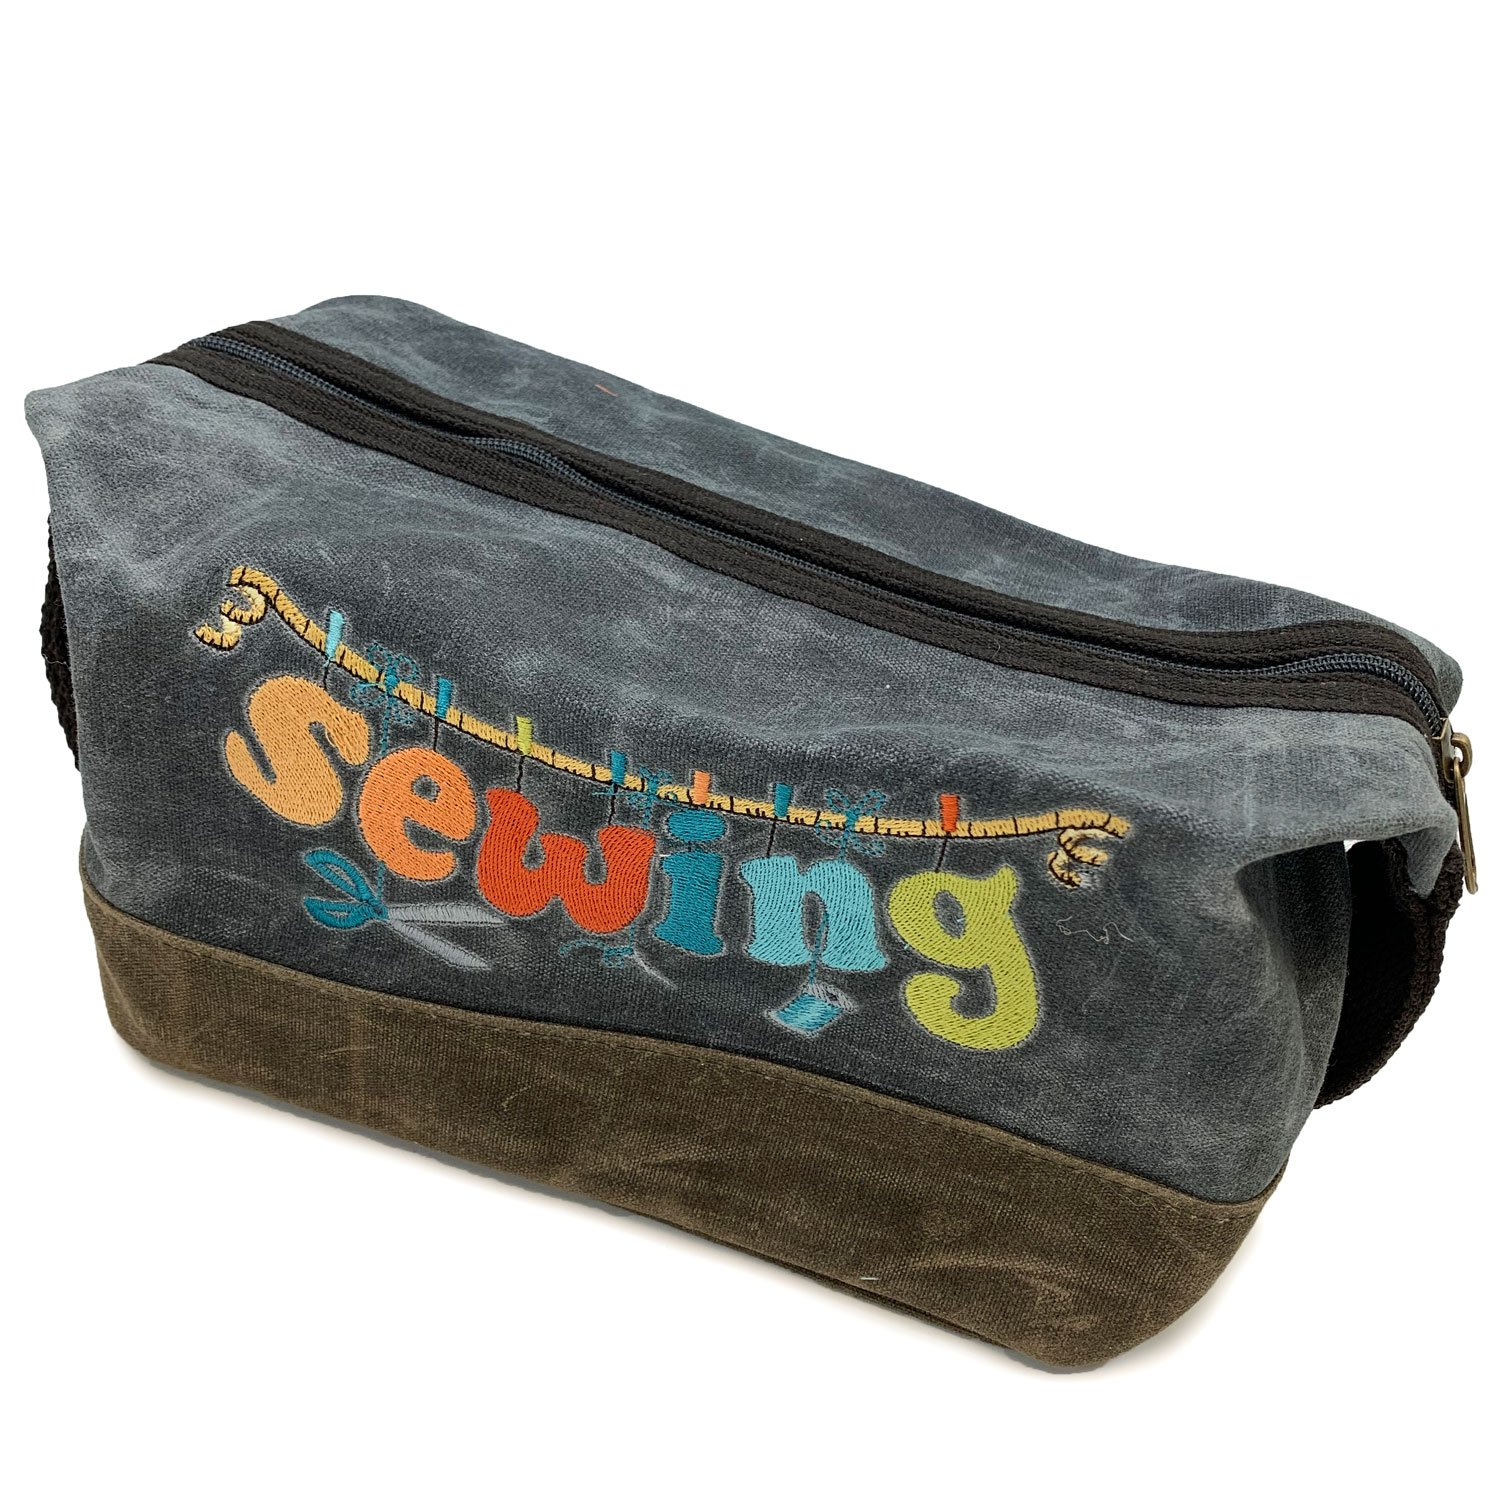 Embroidered Waxed Canvas Sewing Bag Slate